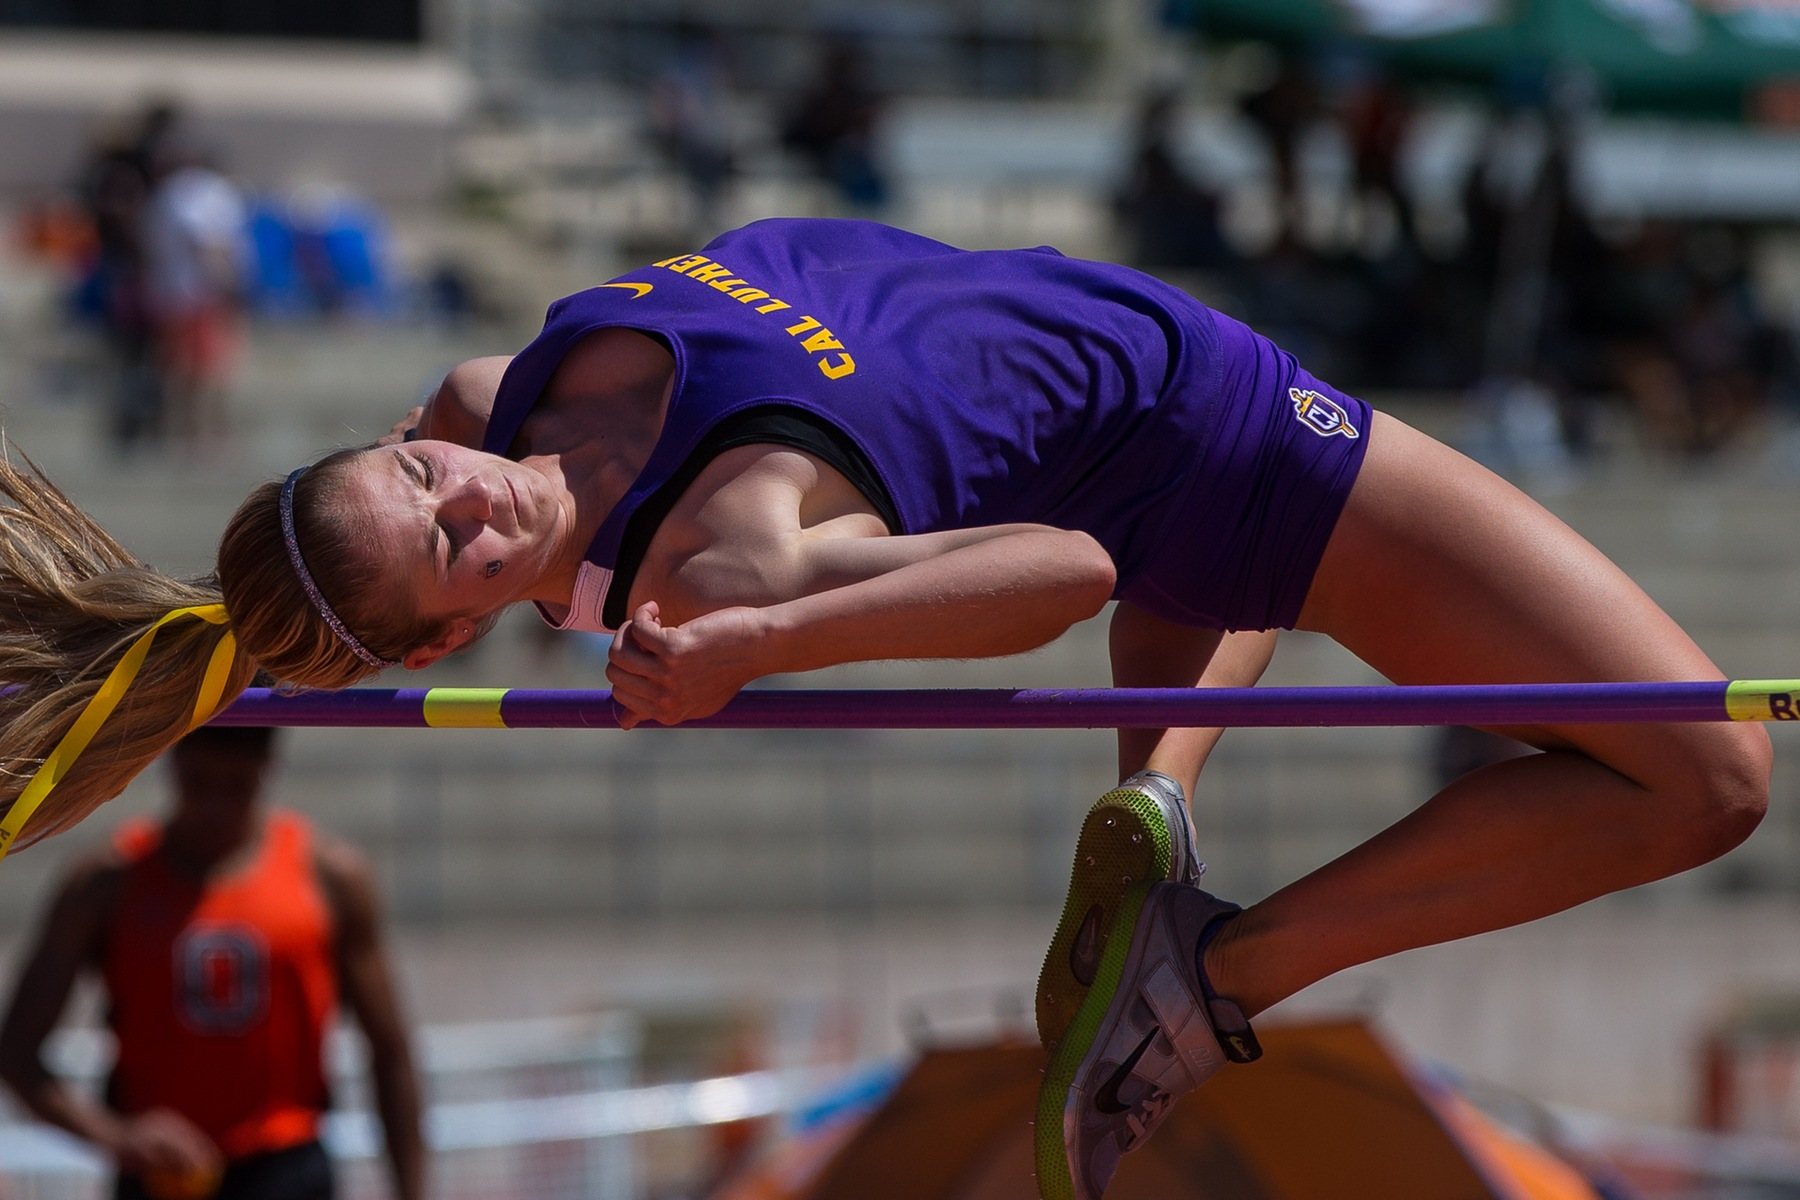 Kelsey Rouse competes in the high jump. (Credit: Dave Donovan)